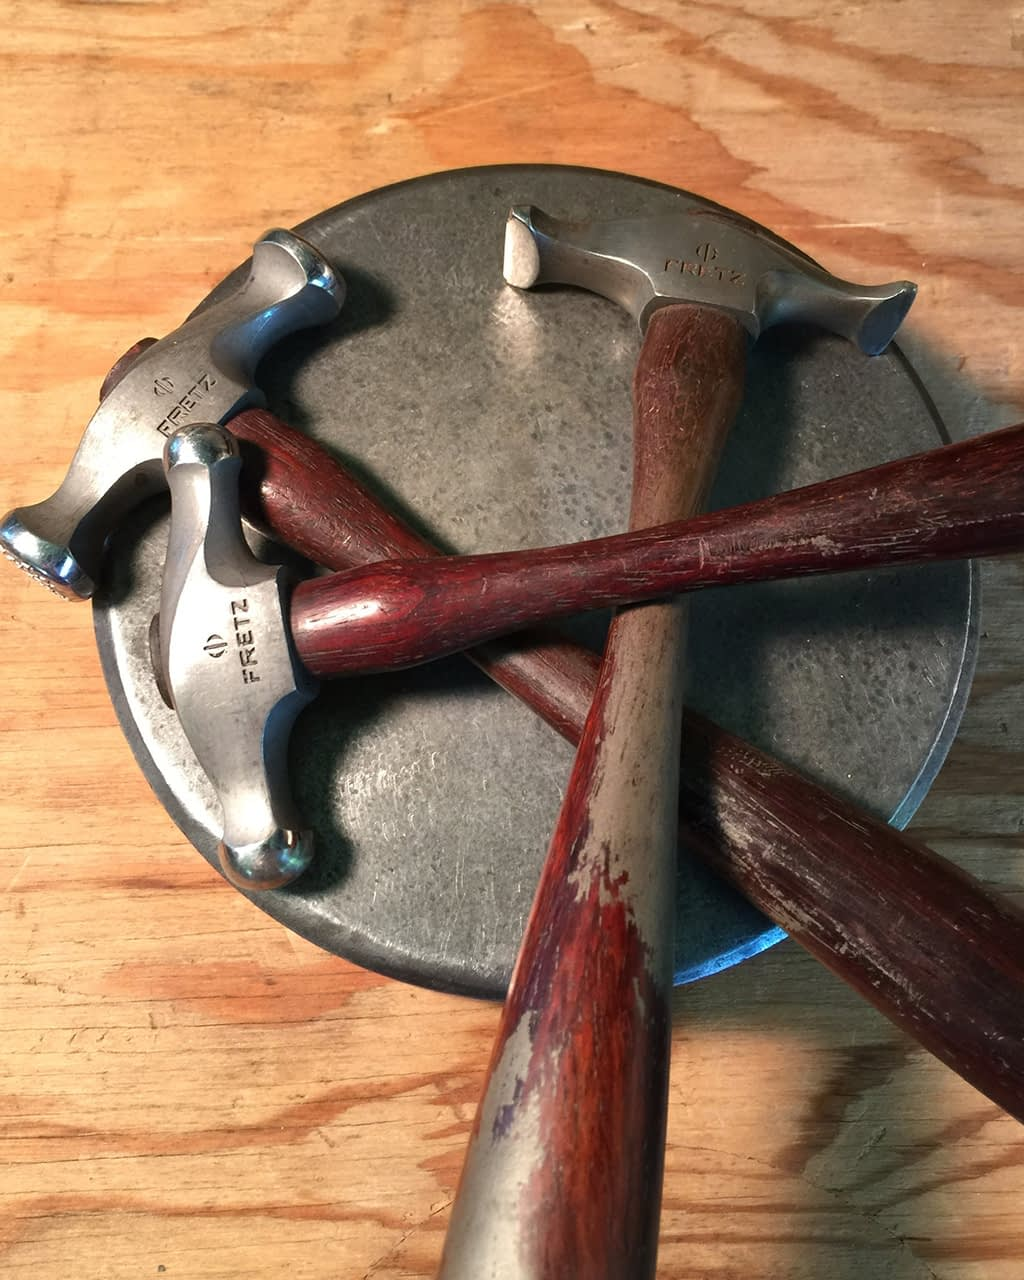 Elisa Saucy's jewelry tools more hammers